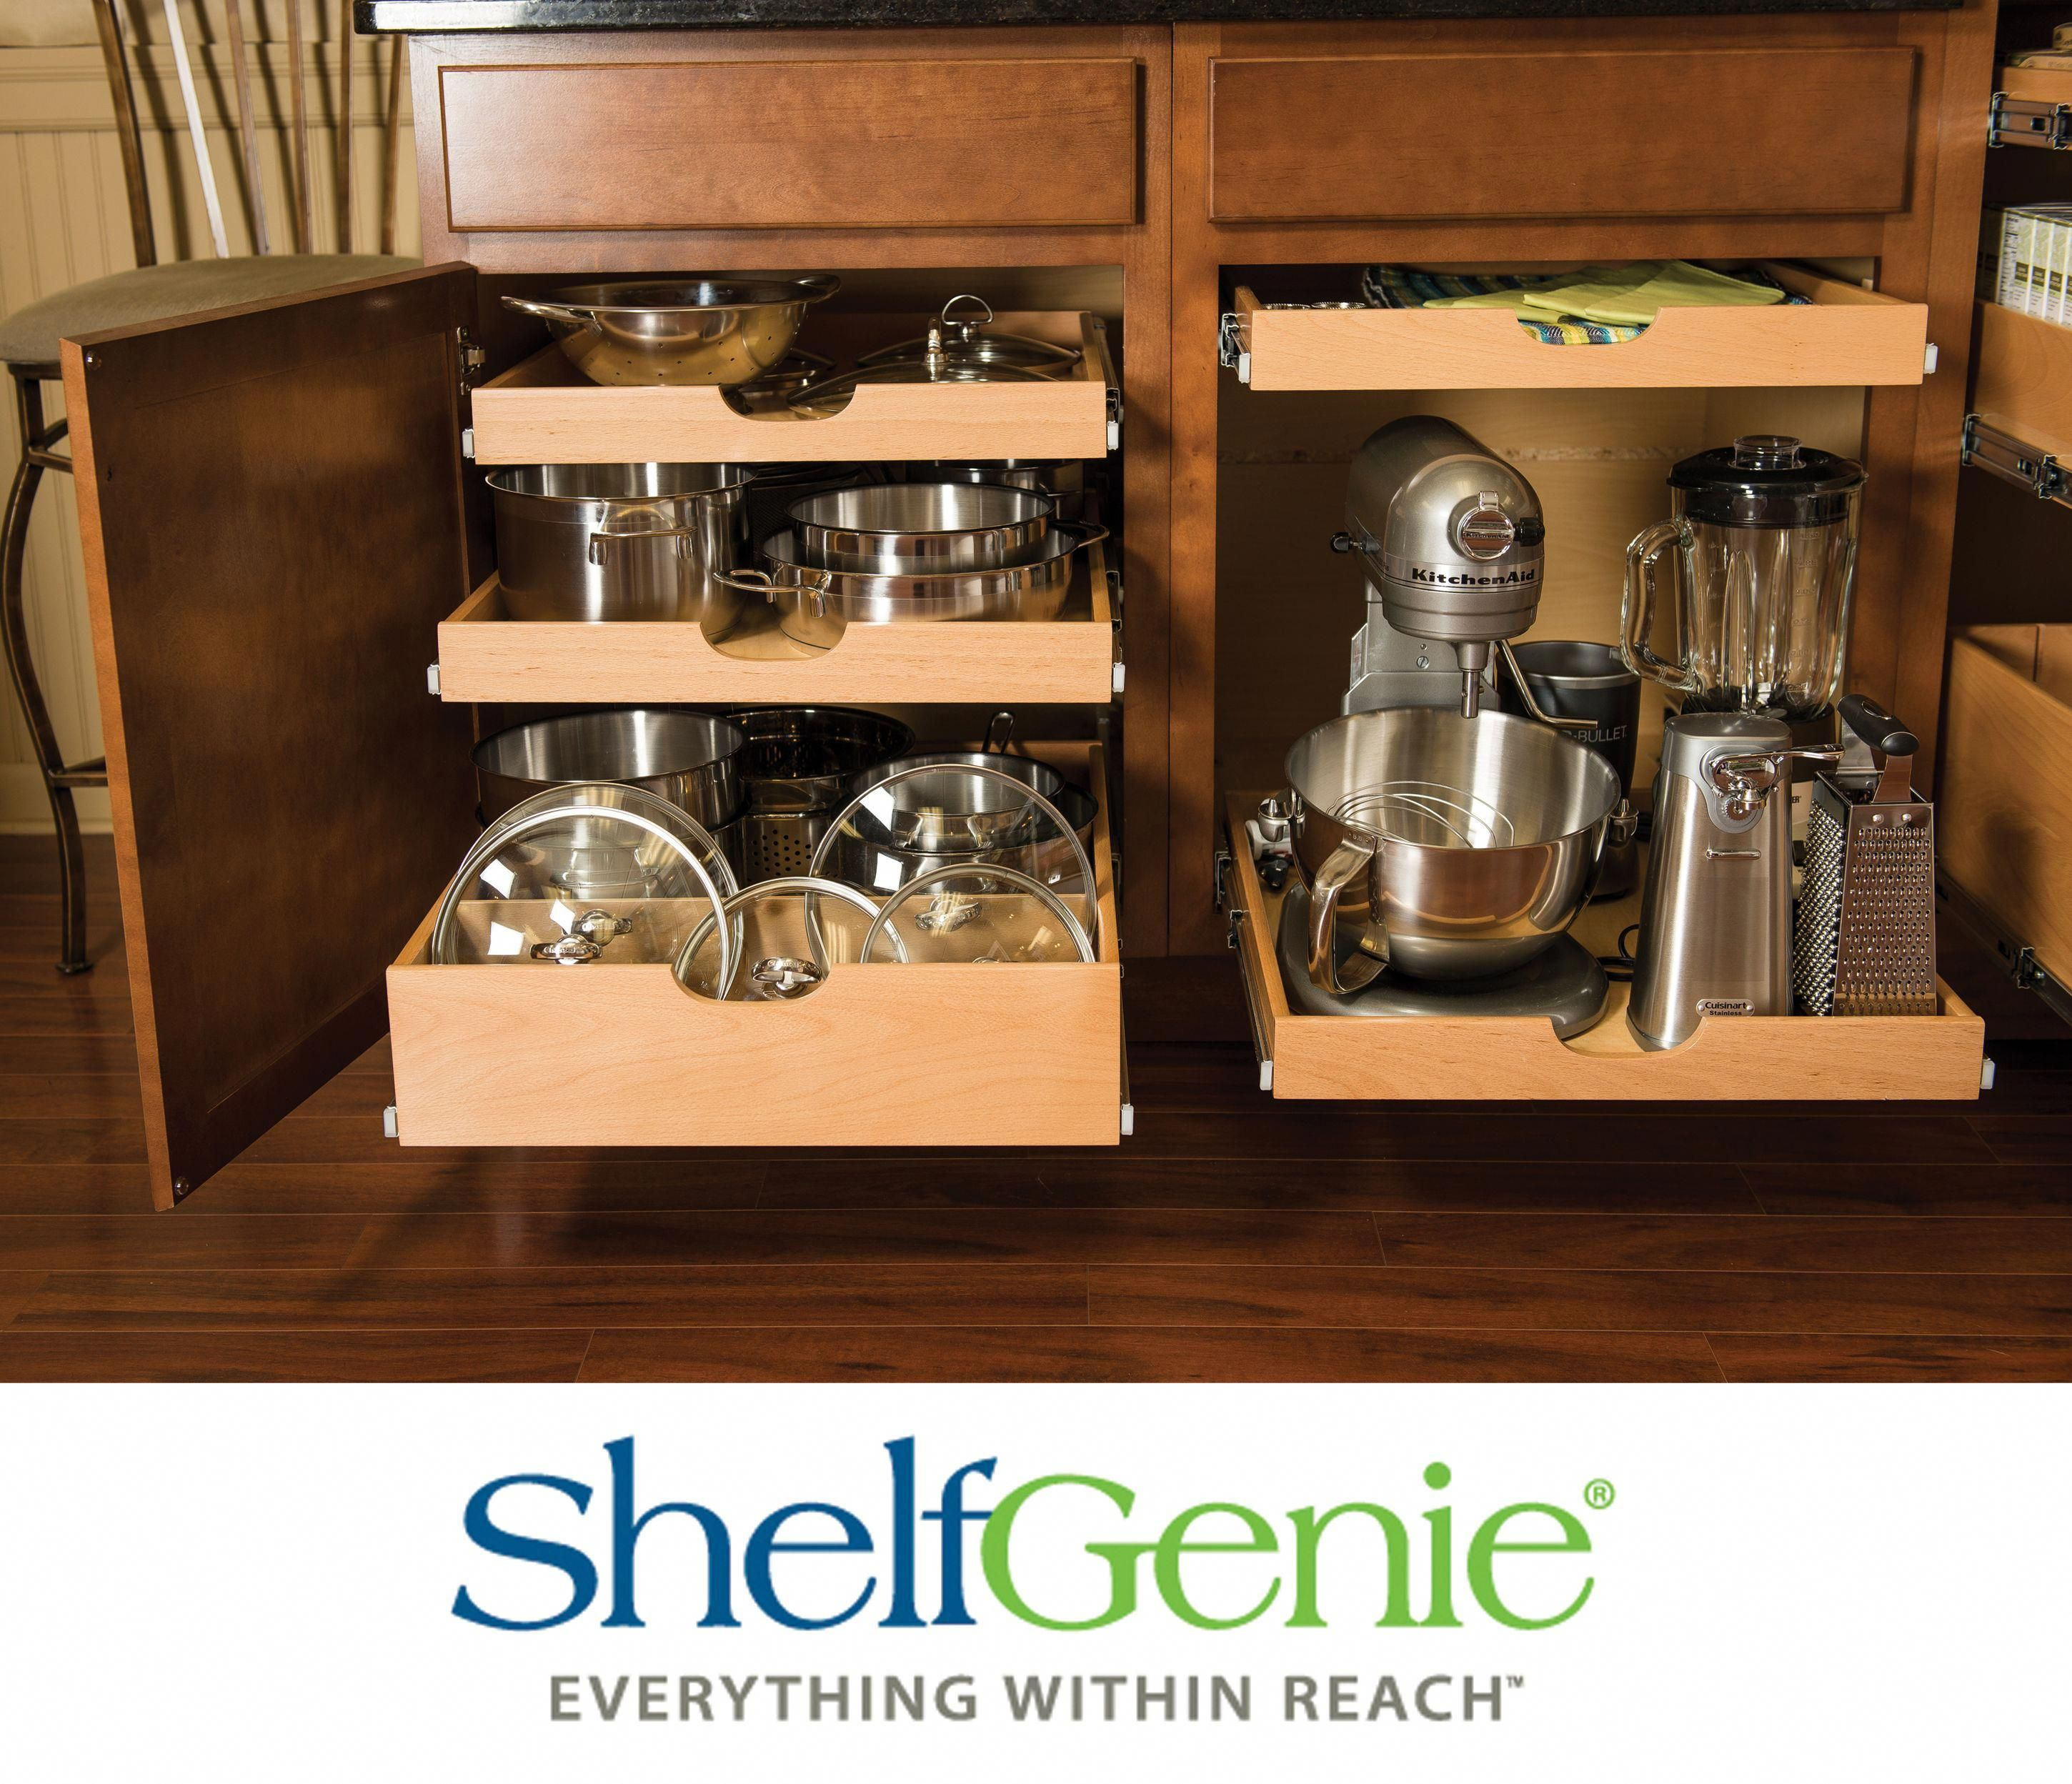 Hometip Put Your Pots Pans And Appliances Within Easy Reach With Full Extension Pull Out Shelves Kitchen Shelves Kitchen Solutions Kitchen Storage Solutions